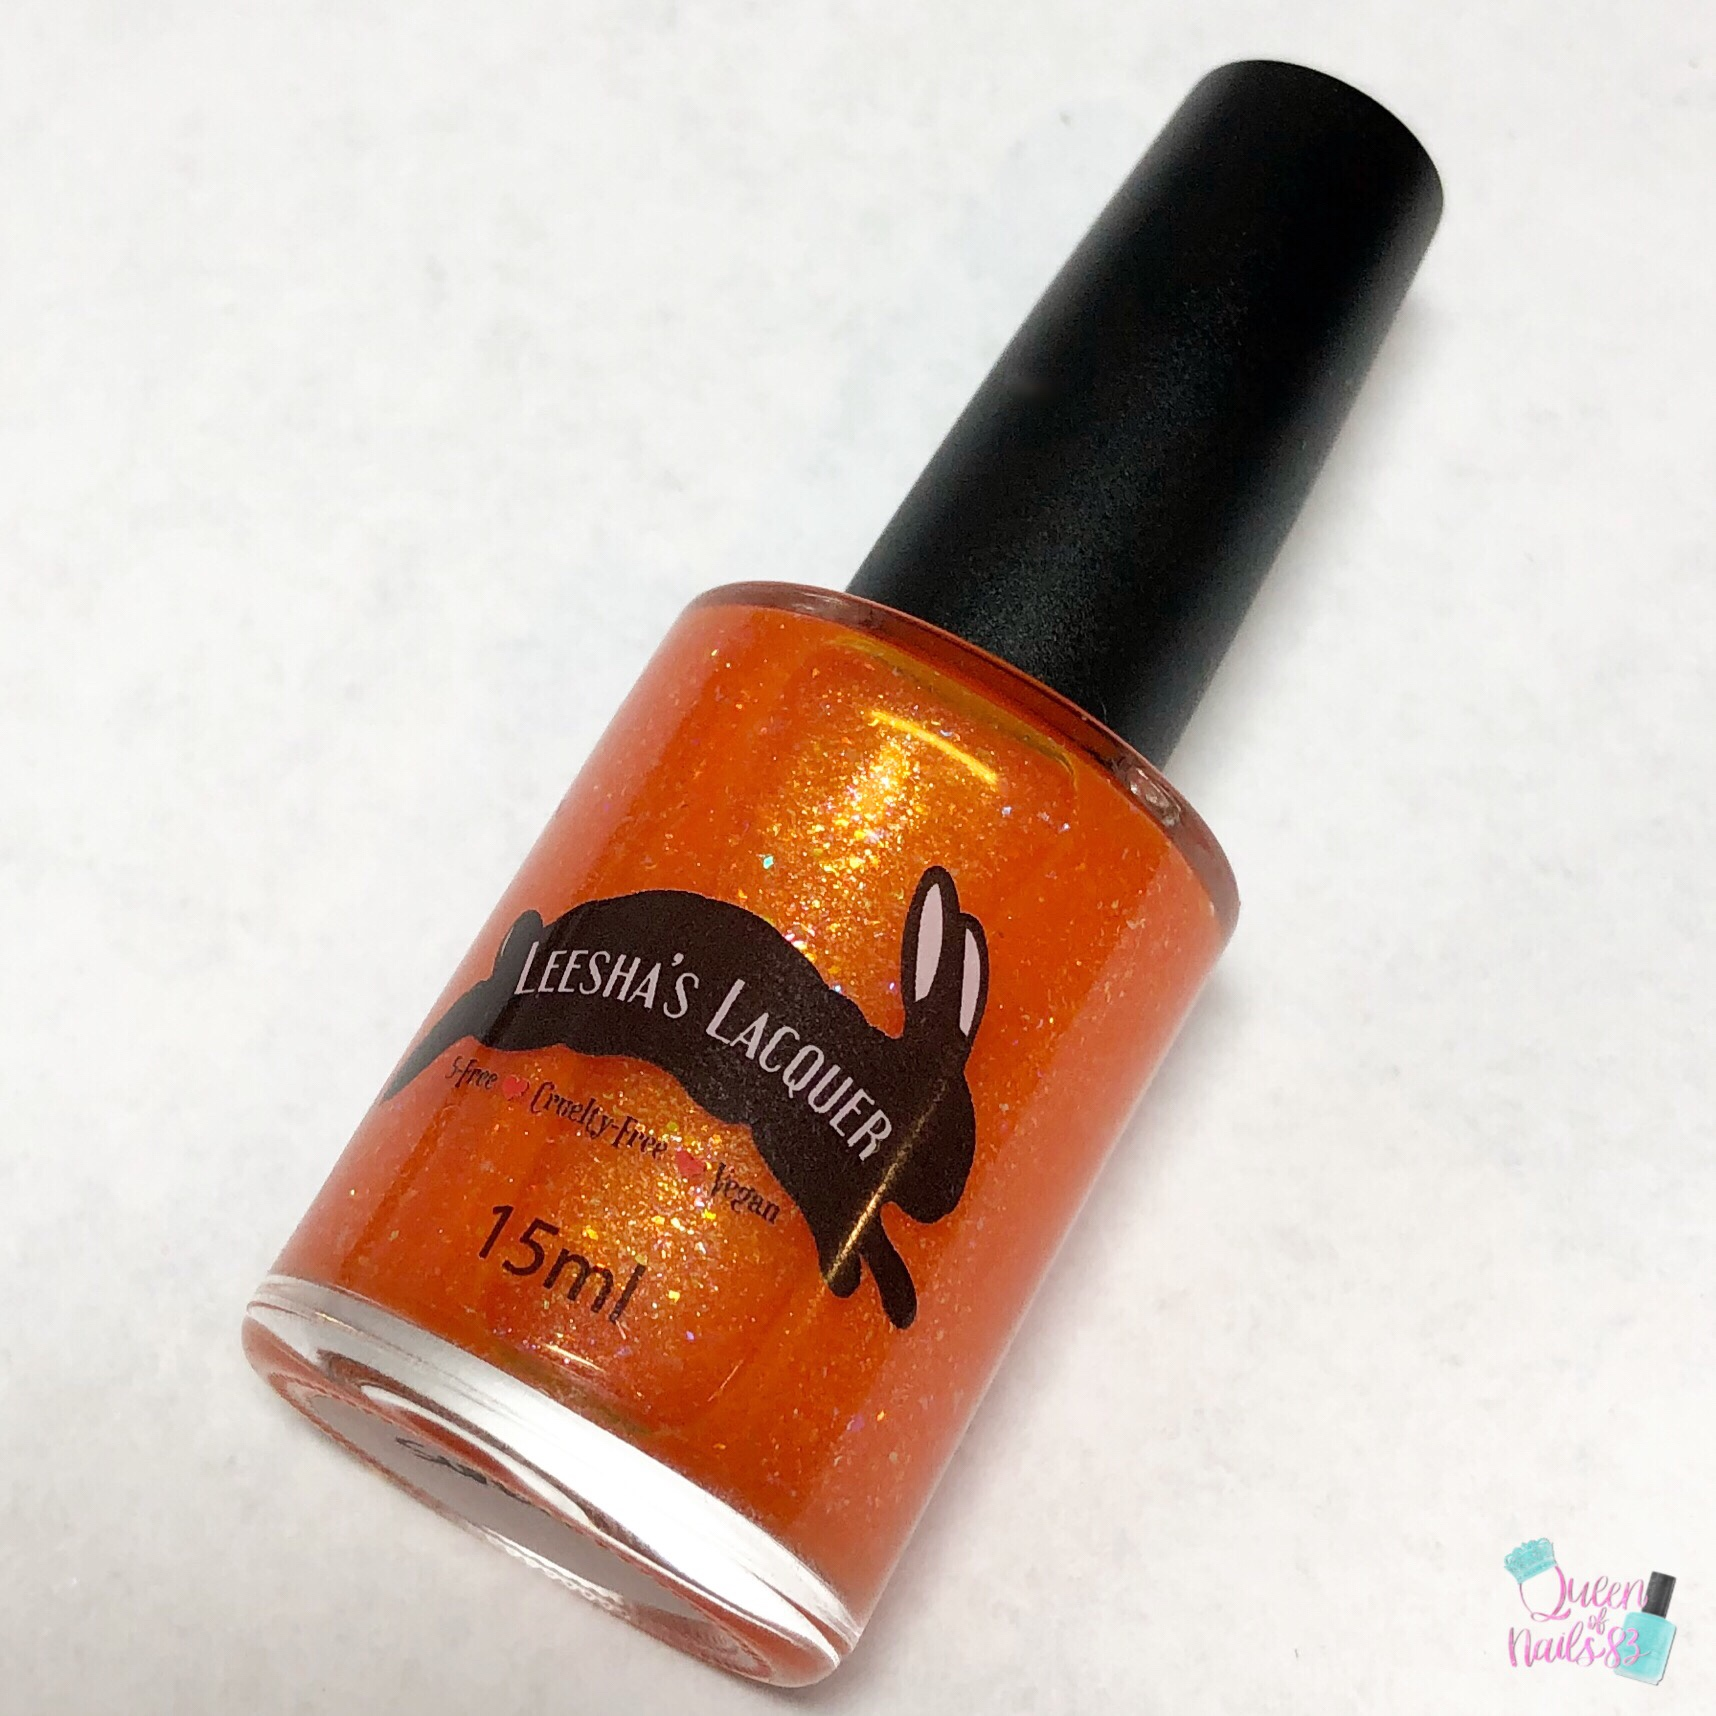 Avon Chrome Nail Powder: The Polished Hippy: Maybelline Super Stay Matte Ink Liquid